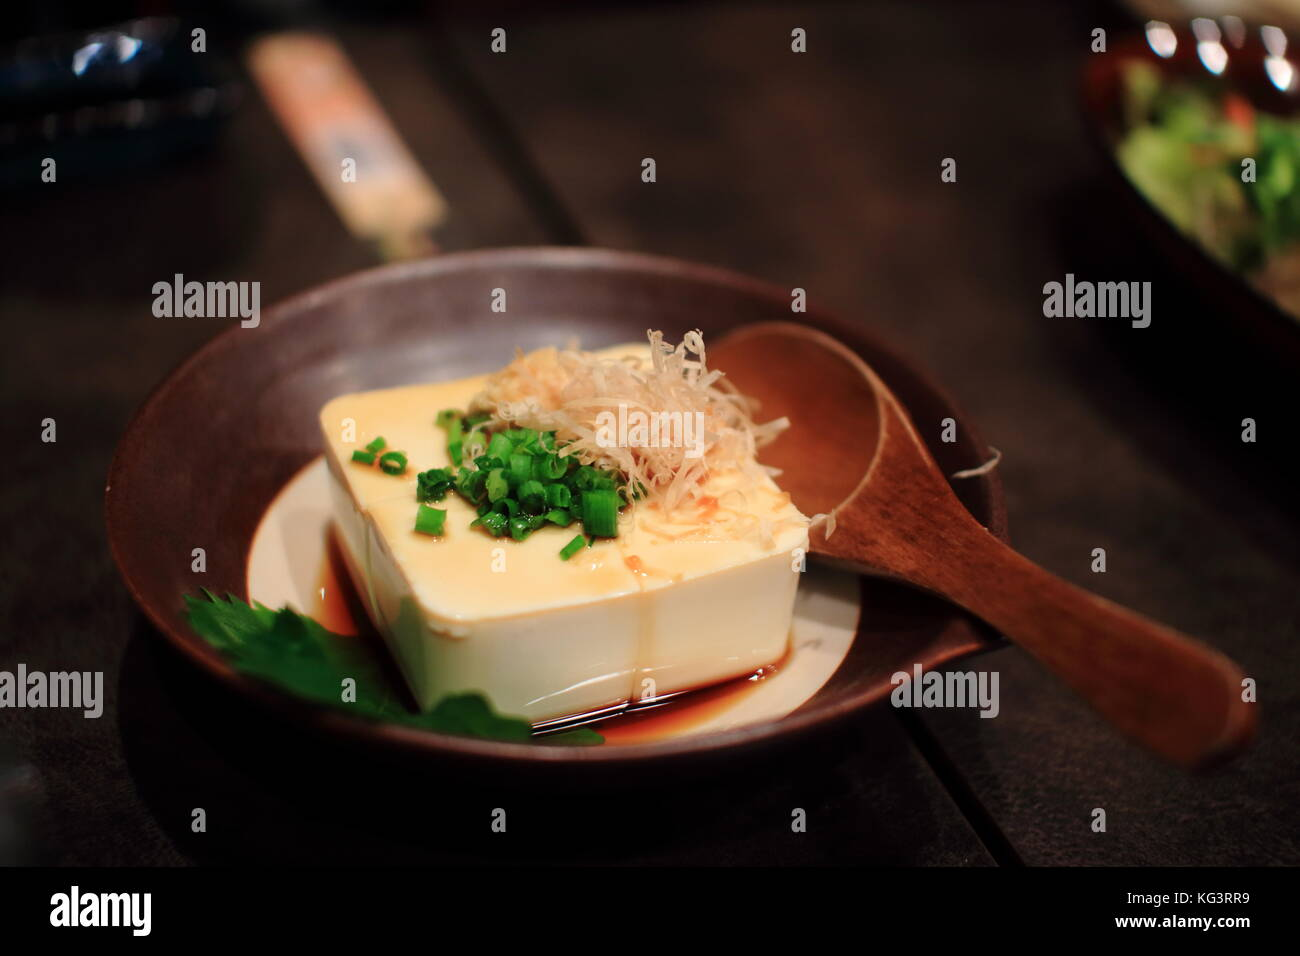 Japan tofu diced dish on wood table in a traditional Japanese restaurant. Healthy food. - Stock Image